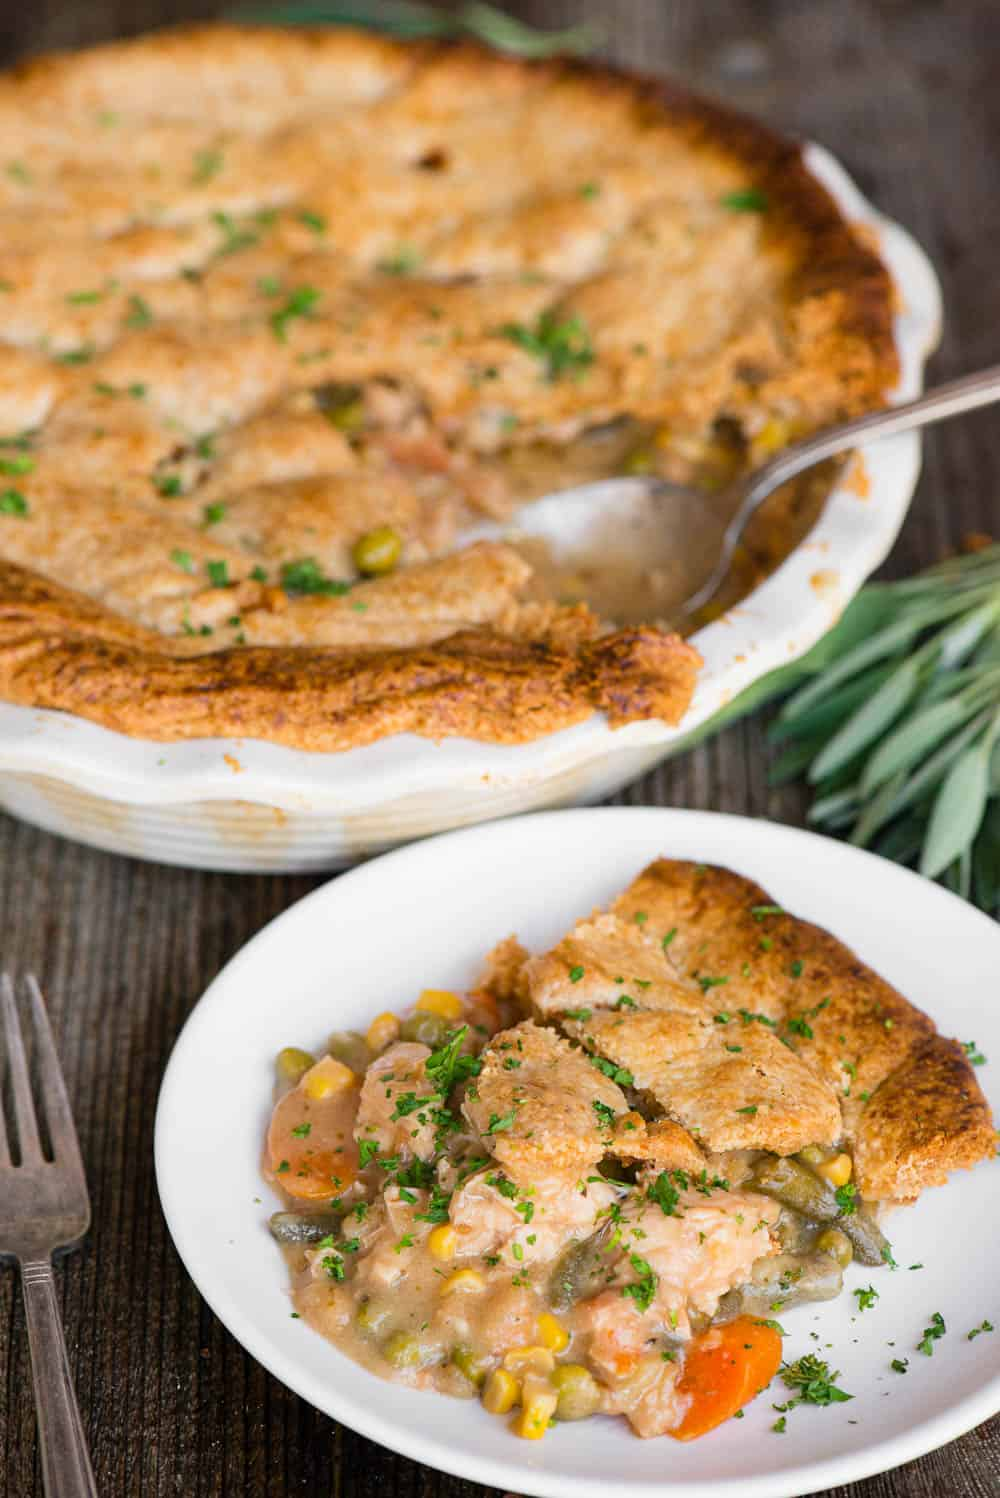 homemade crust with turkey, gravy, and vegetable pot pie on plate